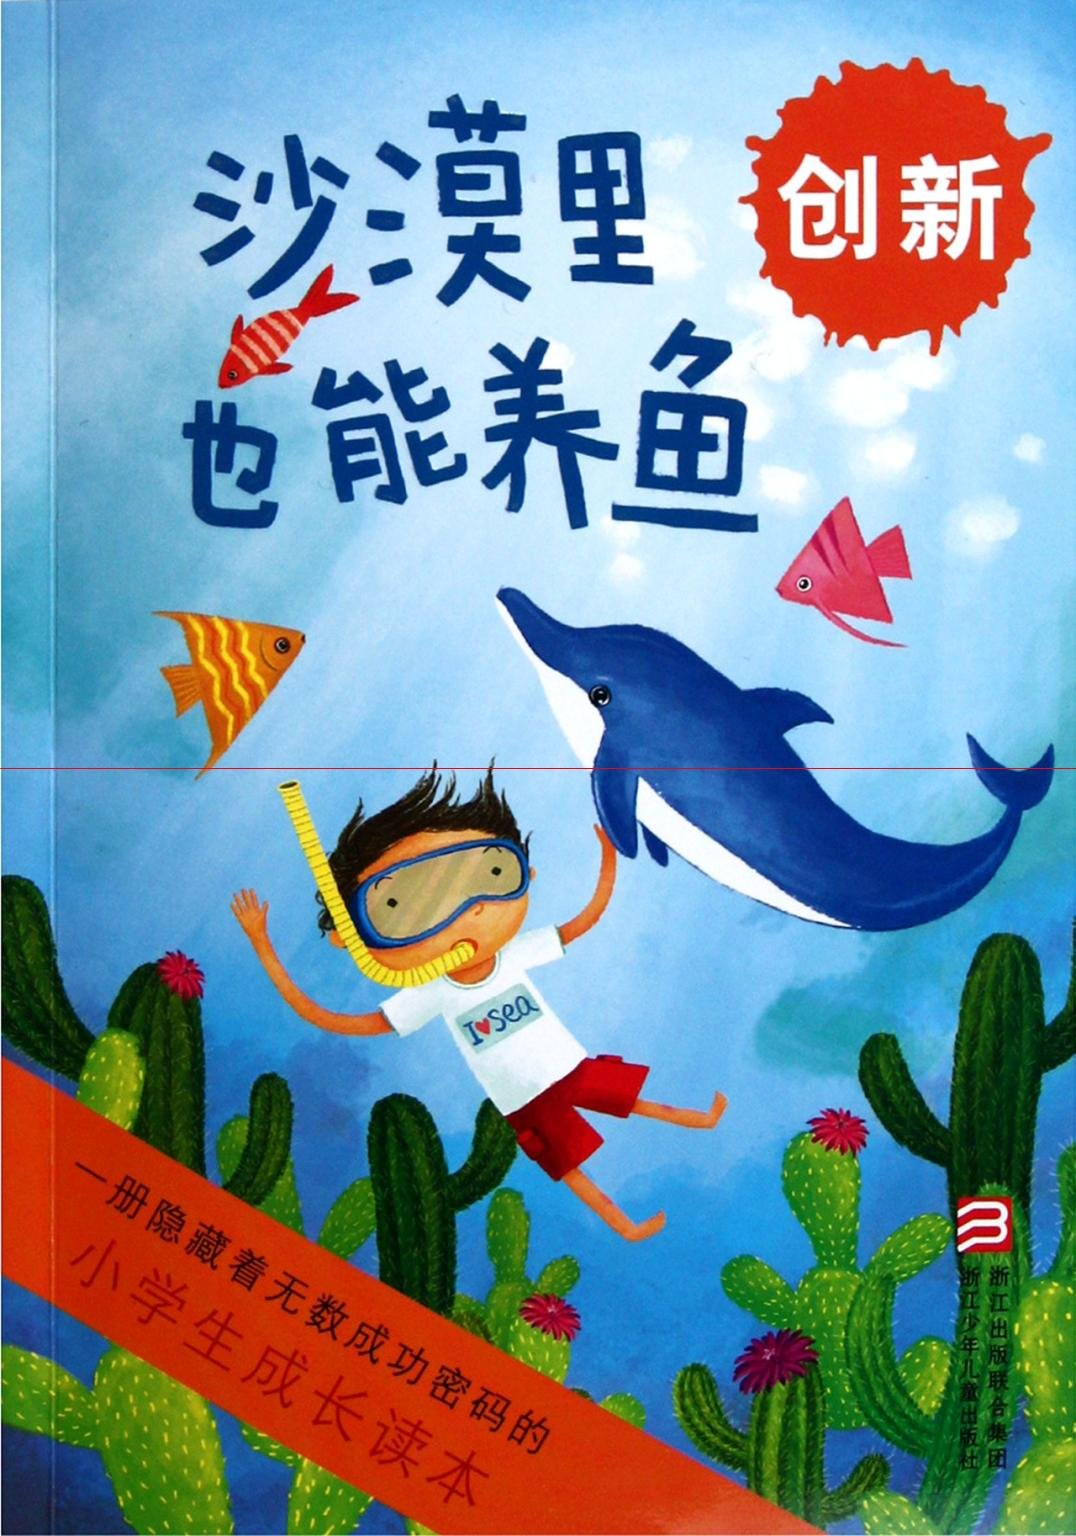 You can Raise Fish in Desert - Innovation (Chinese Edition) PDF